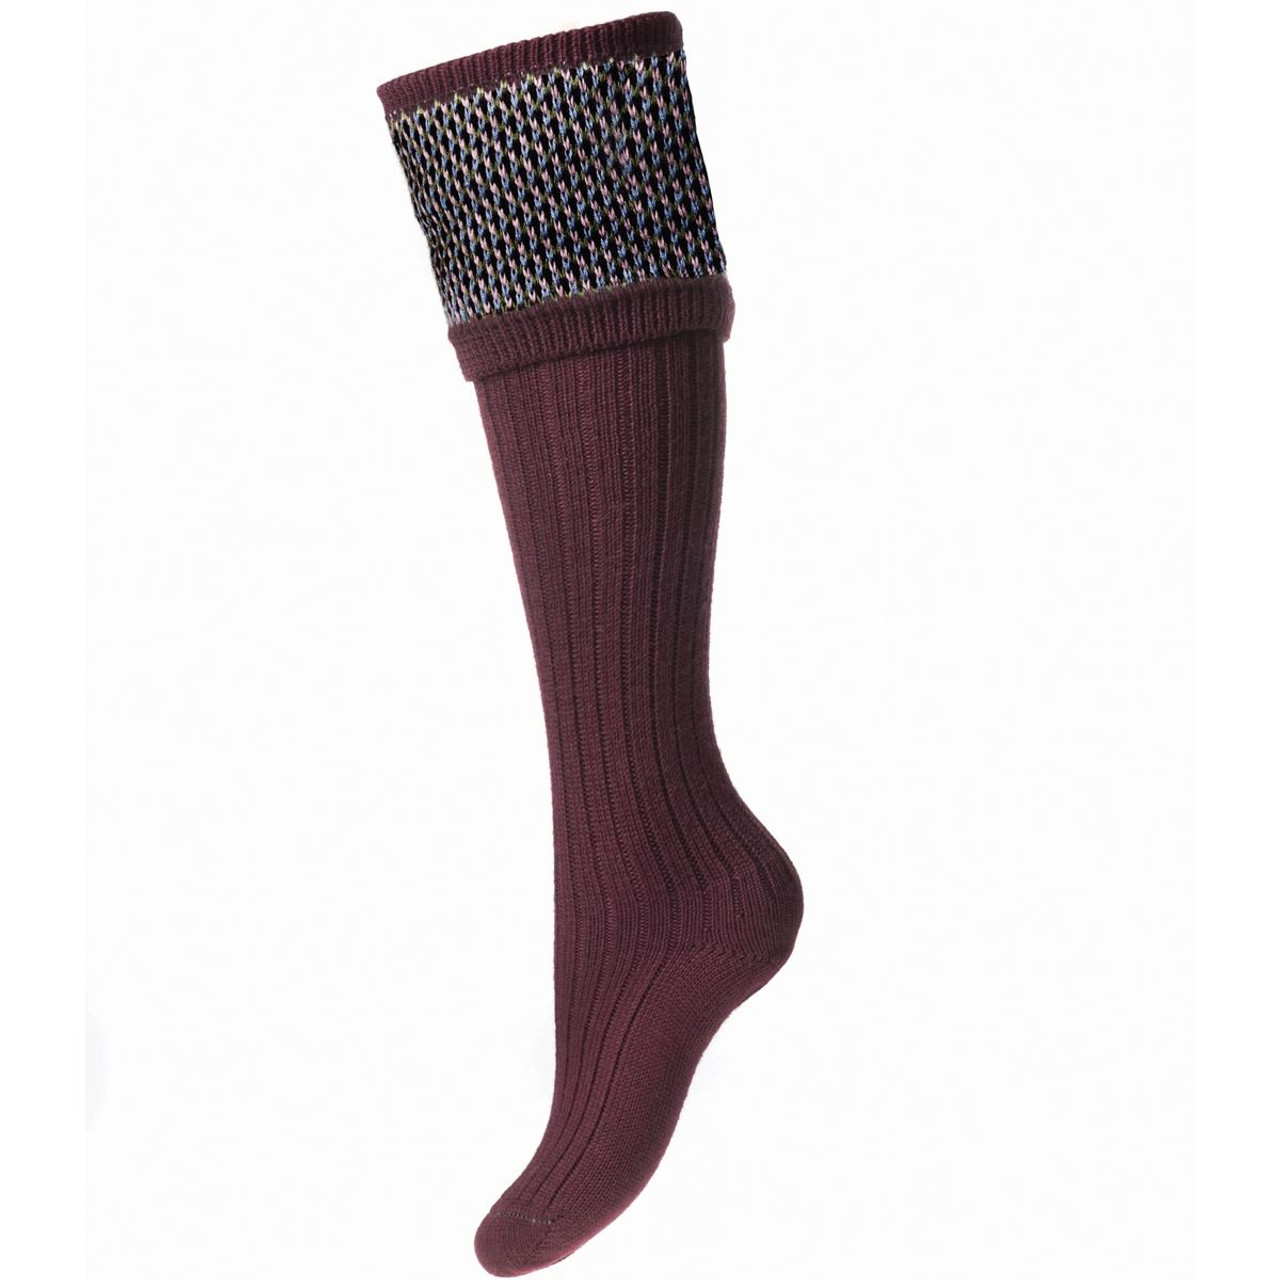 Burgundy - House Of Cheviot Lady Tayside Socks